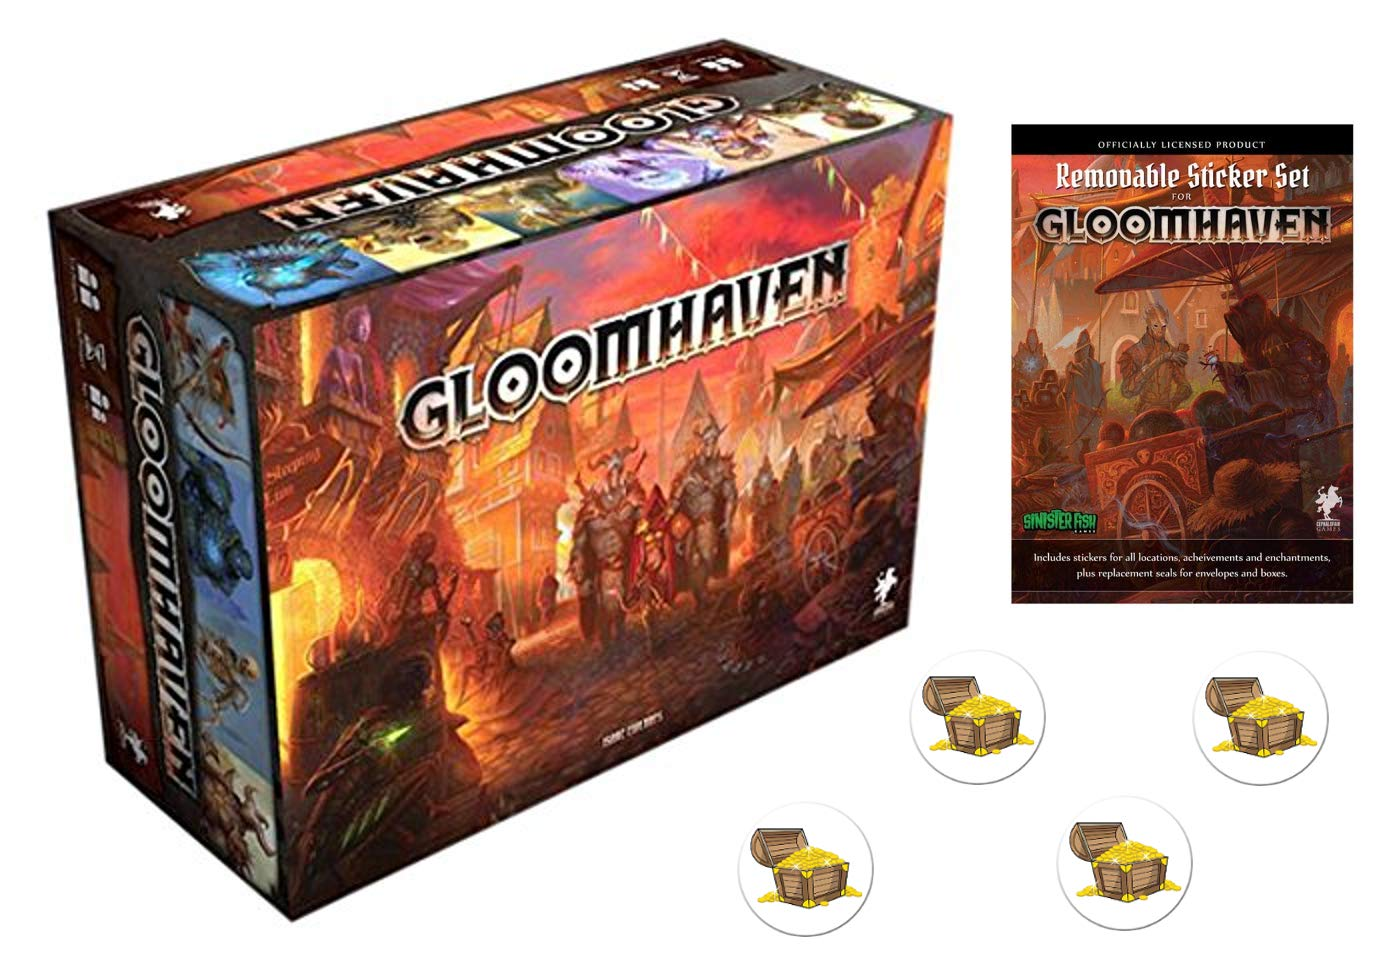 Bundle of Gloomhaven Board Game and Sticker Set Plus Four Treasure Chest Button